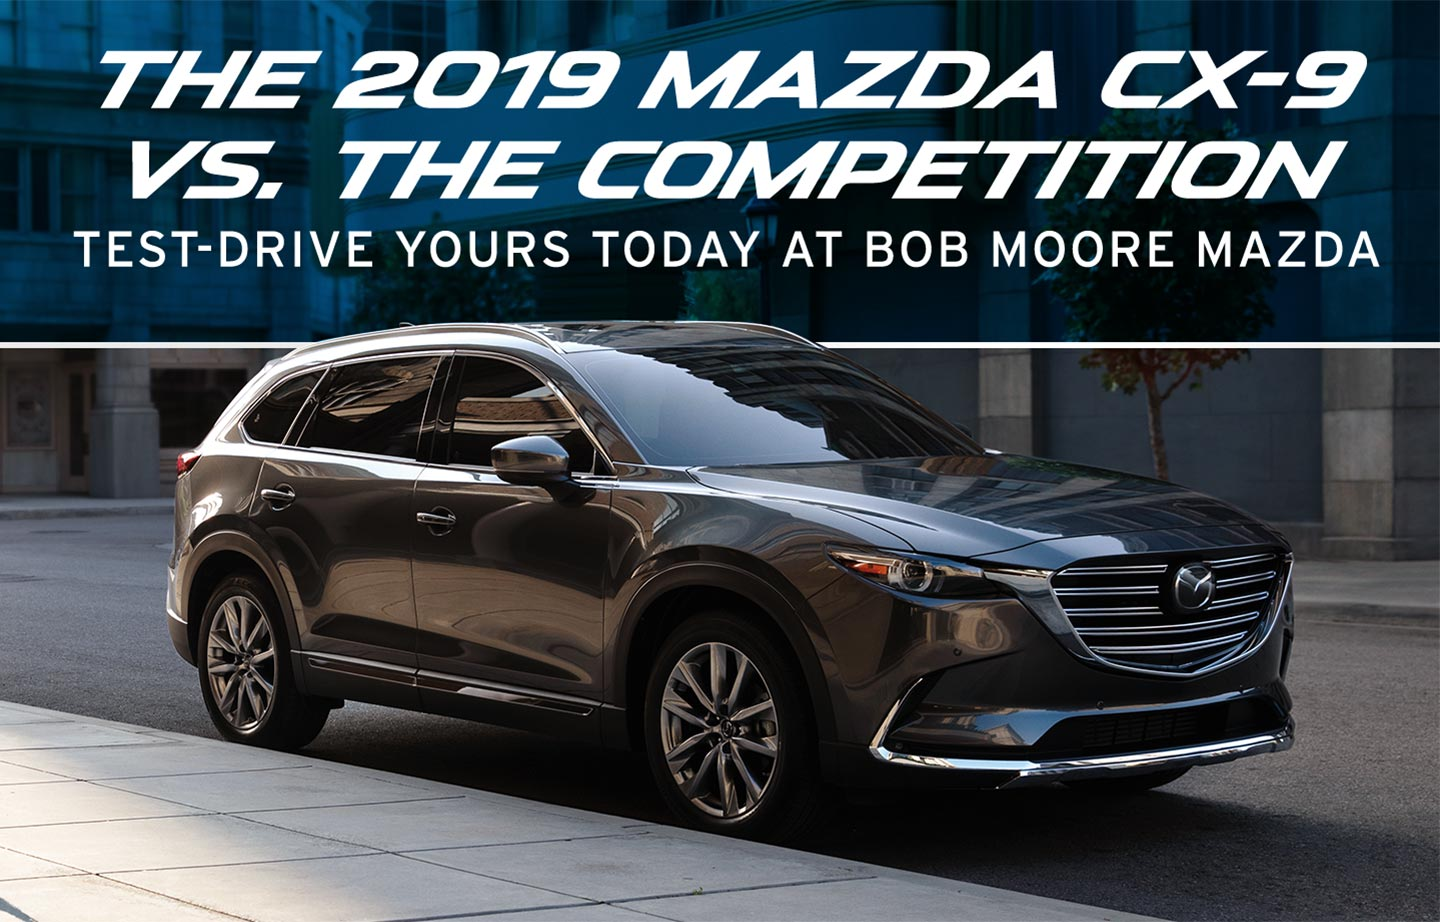 2019 Mazda CX-9 parked in city at Bob Moore Mazda.